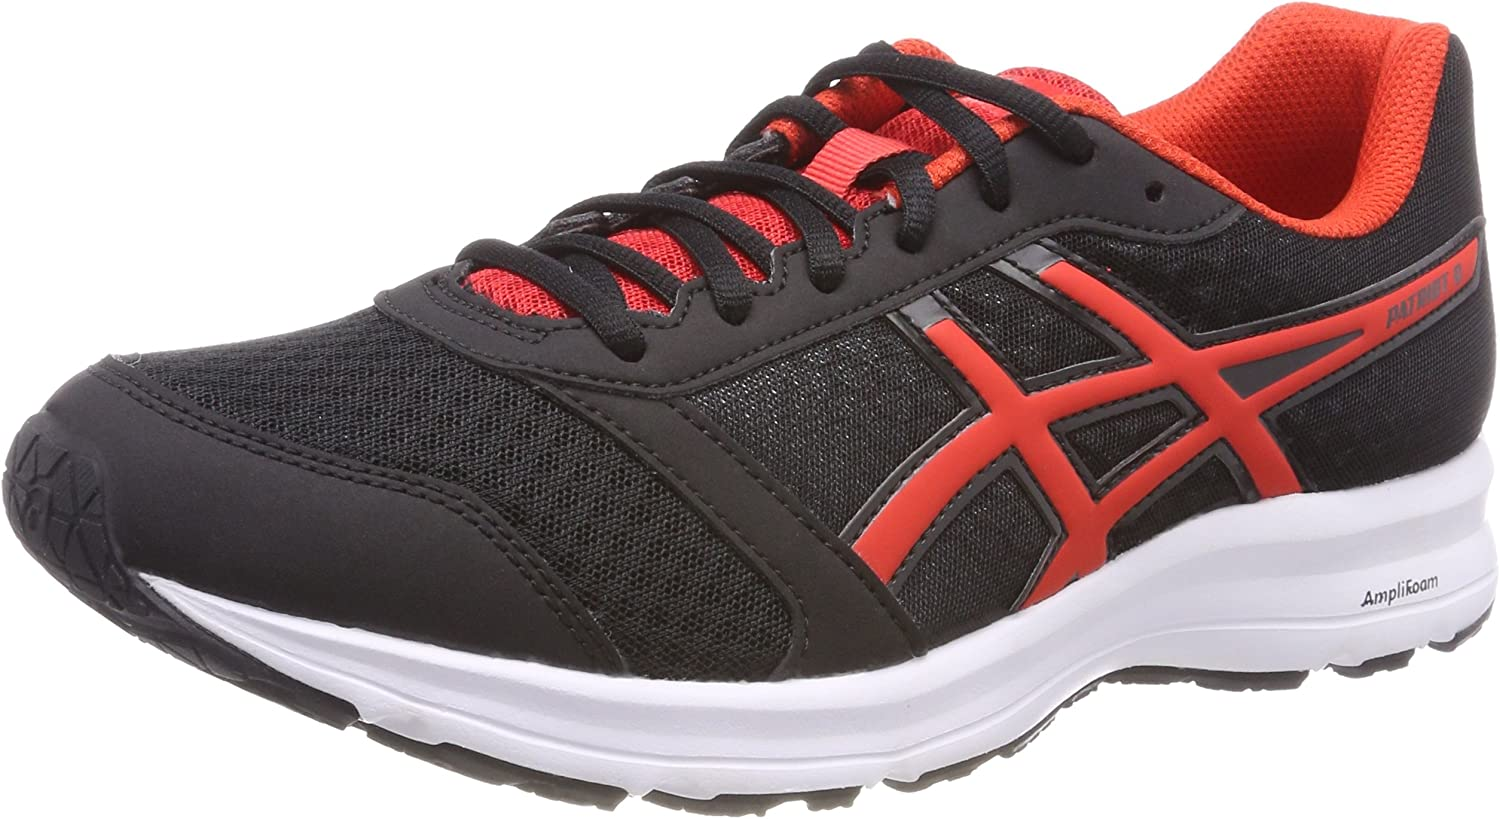 Asics Patriot 9, Zapatillas de Running para Hombre, Negro (Black/Fiery Red/White 9023), 41.5 EU: Amazon.es: Zapatos y complementos